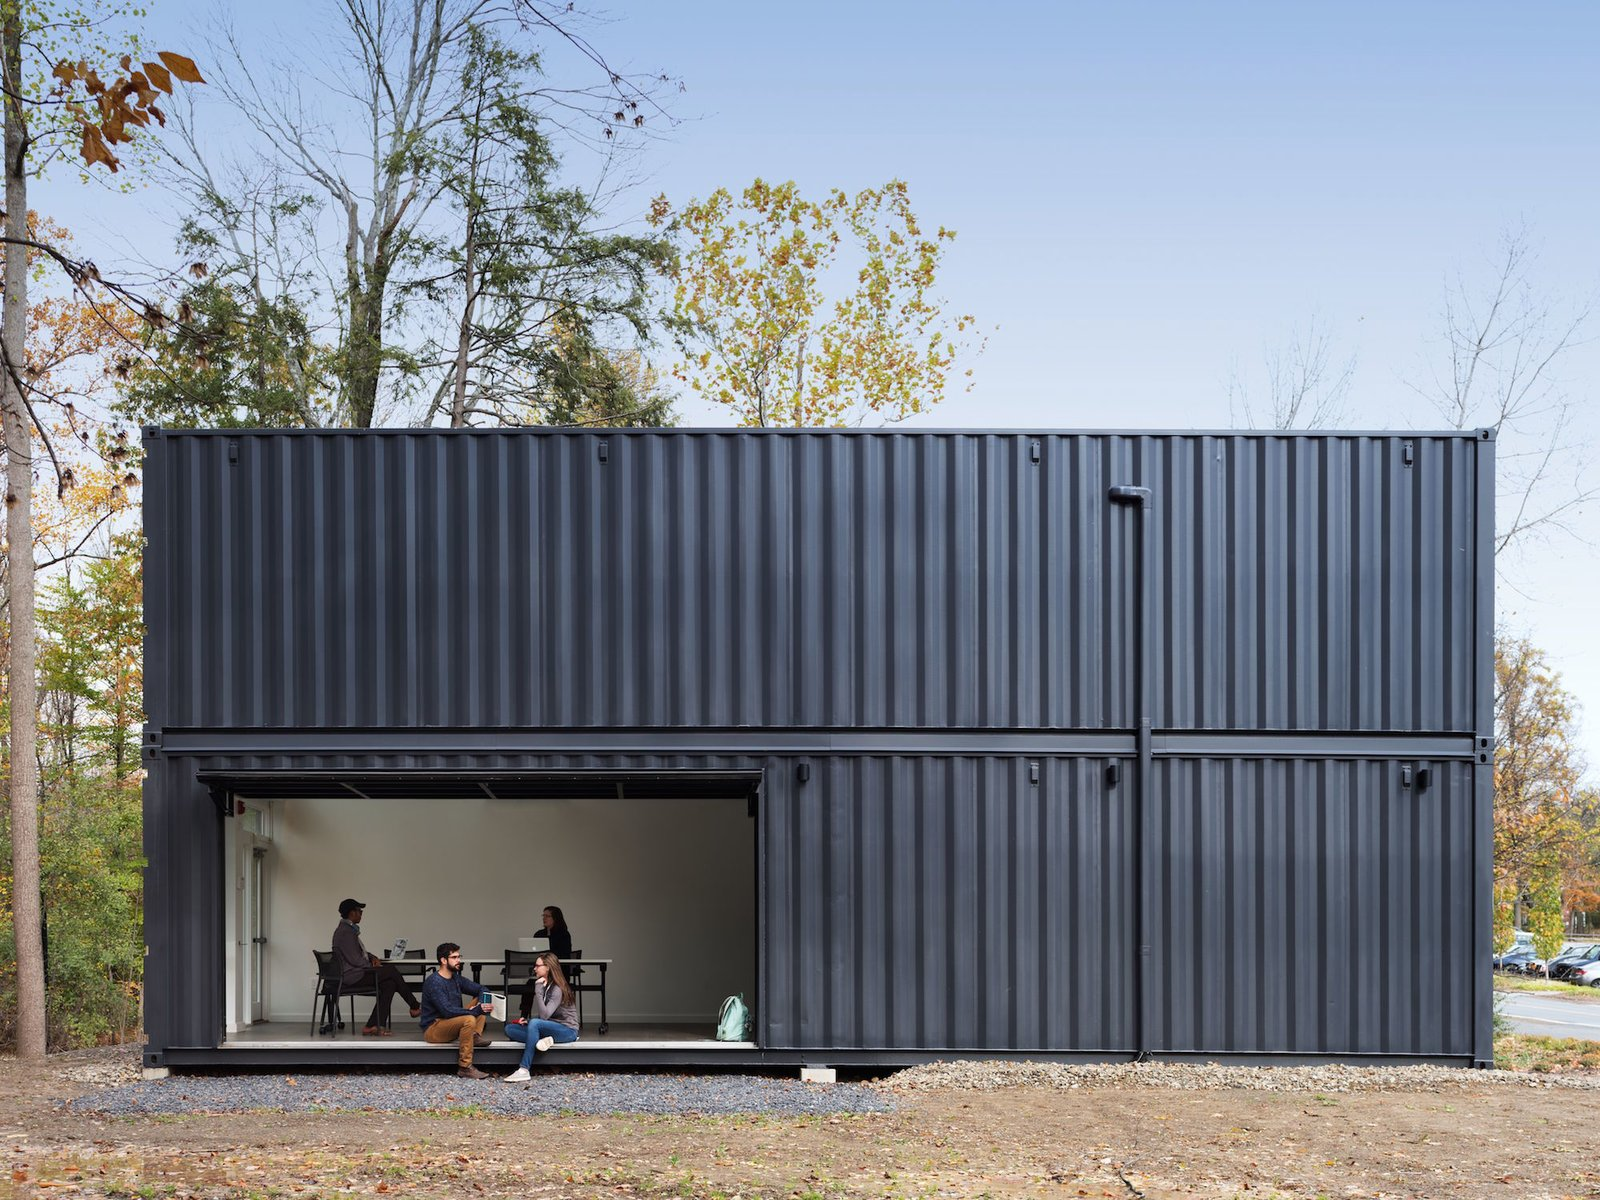 A Shipping Container Prefab Lab Is Built In Only 4 Hours